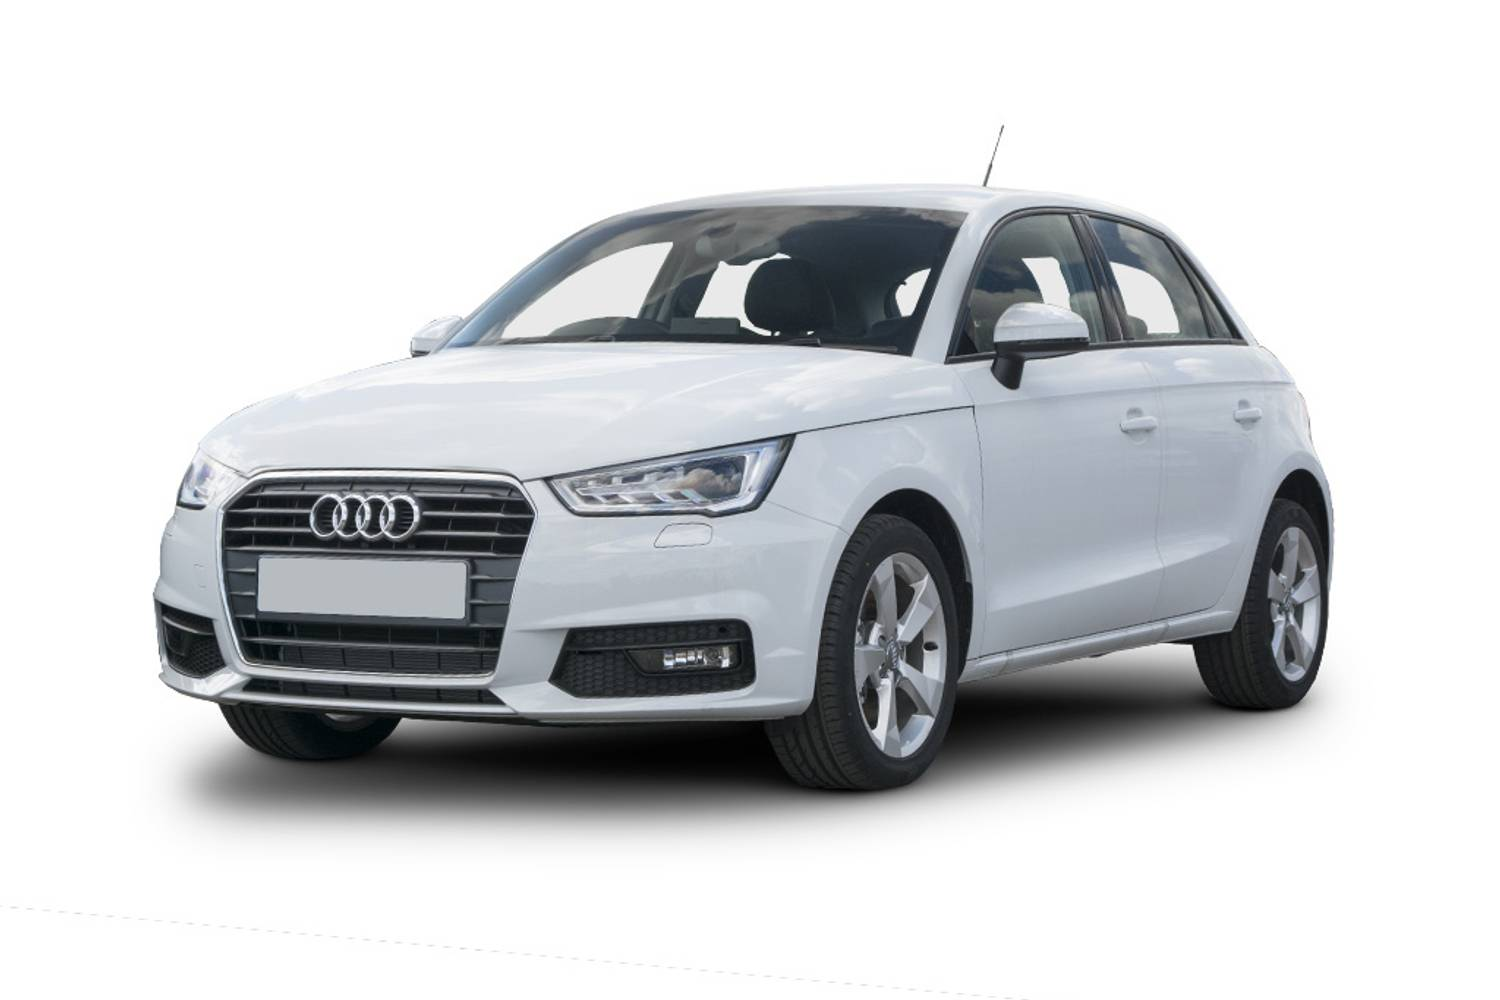 new audi a1 diesel sportback 1 6 tdi sport 5 door s tronic 2015 for sale. Black Bedroom Furniture Sets. Home Design Ideas